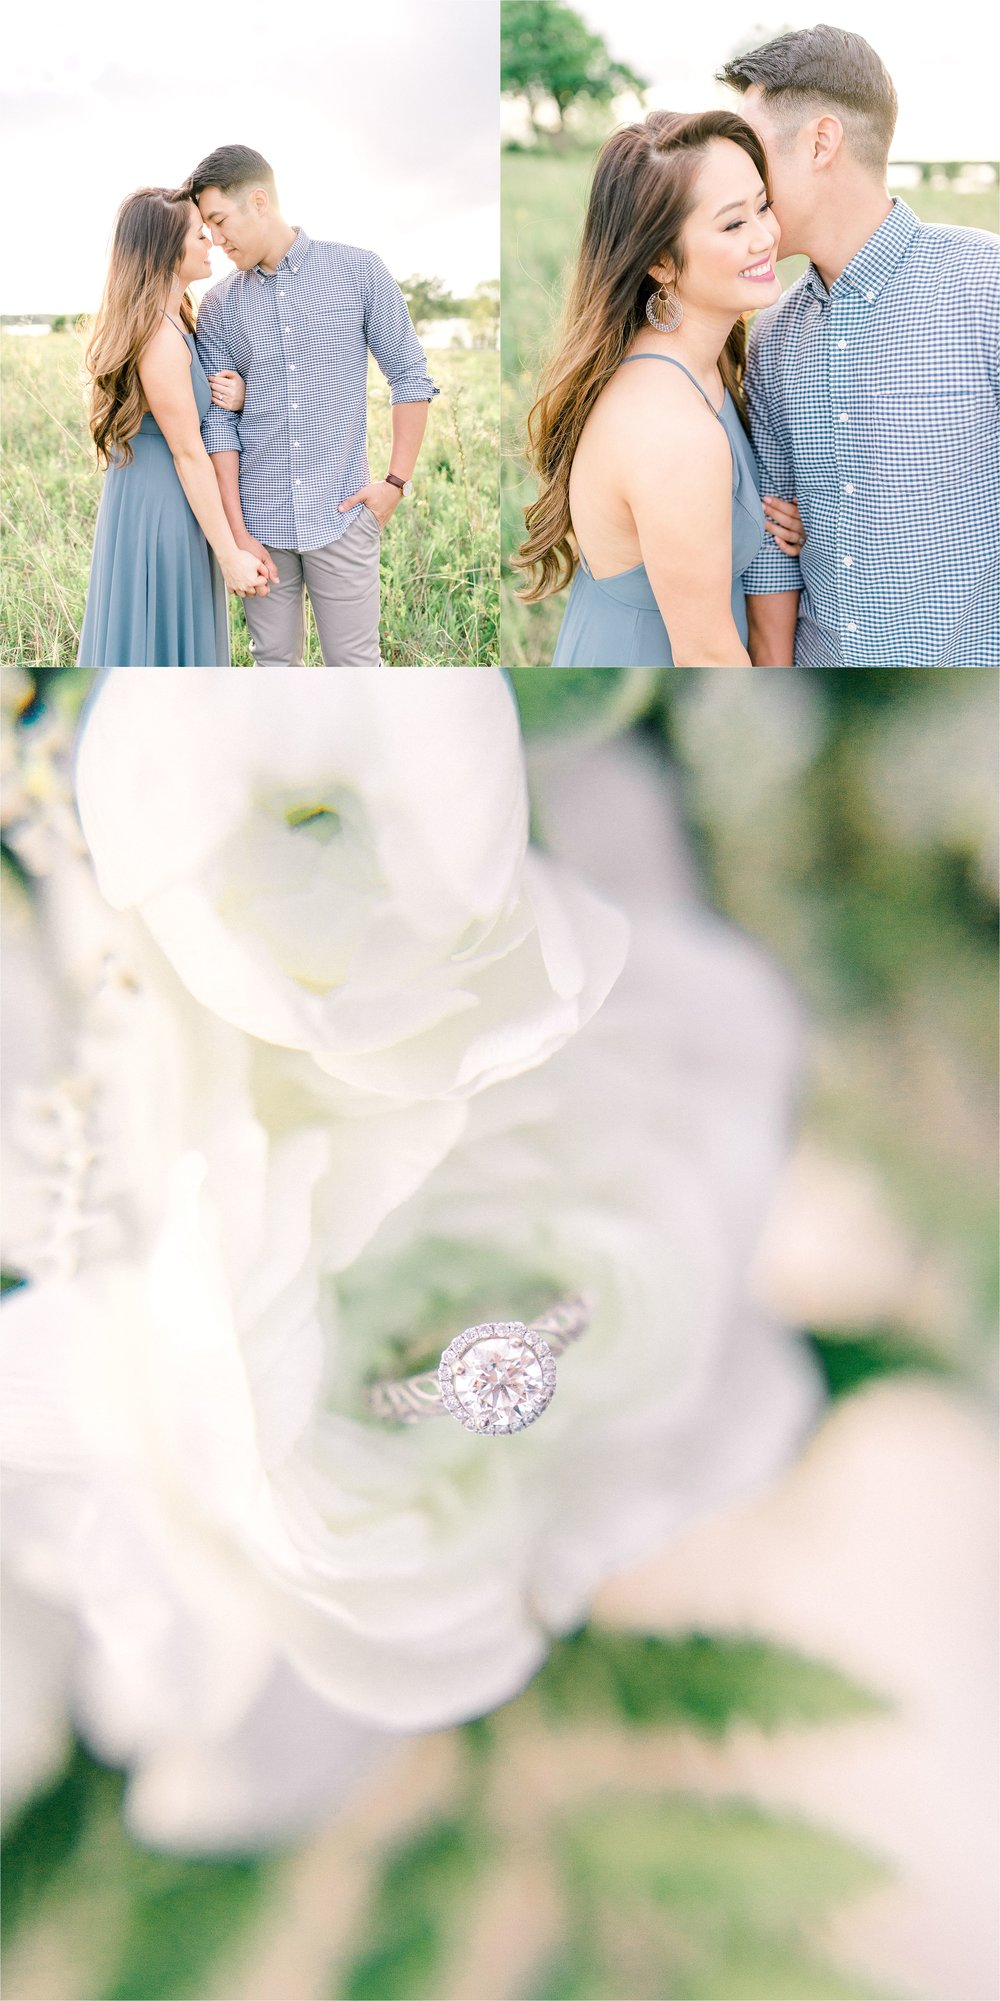 CHUALEEPHOTOGRAPHY_TEXASWEDDINGPHOTOGRAPHER_WHITEROCKLAKE_1026.jpg